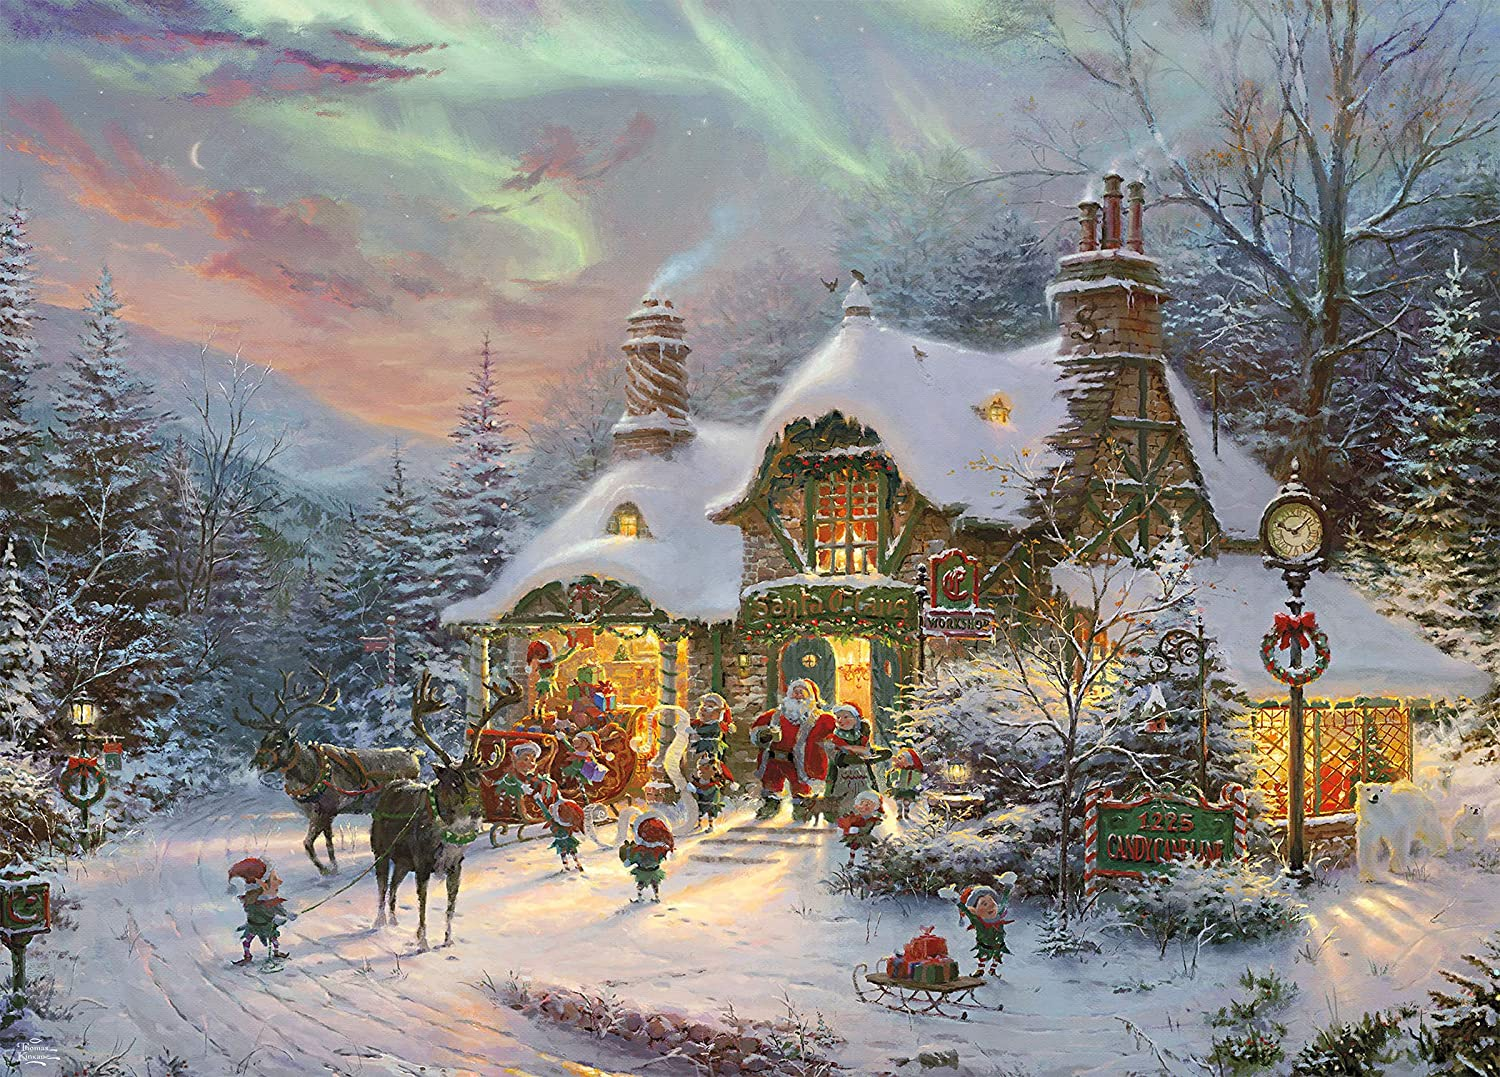 Ceaco Thomas Kinkade Santa Night Before Christmas Puzzle - 1000 Piece